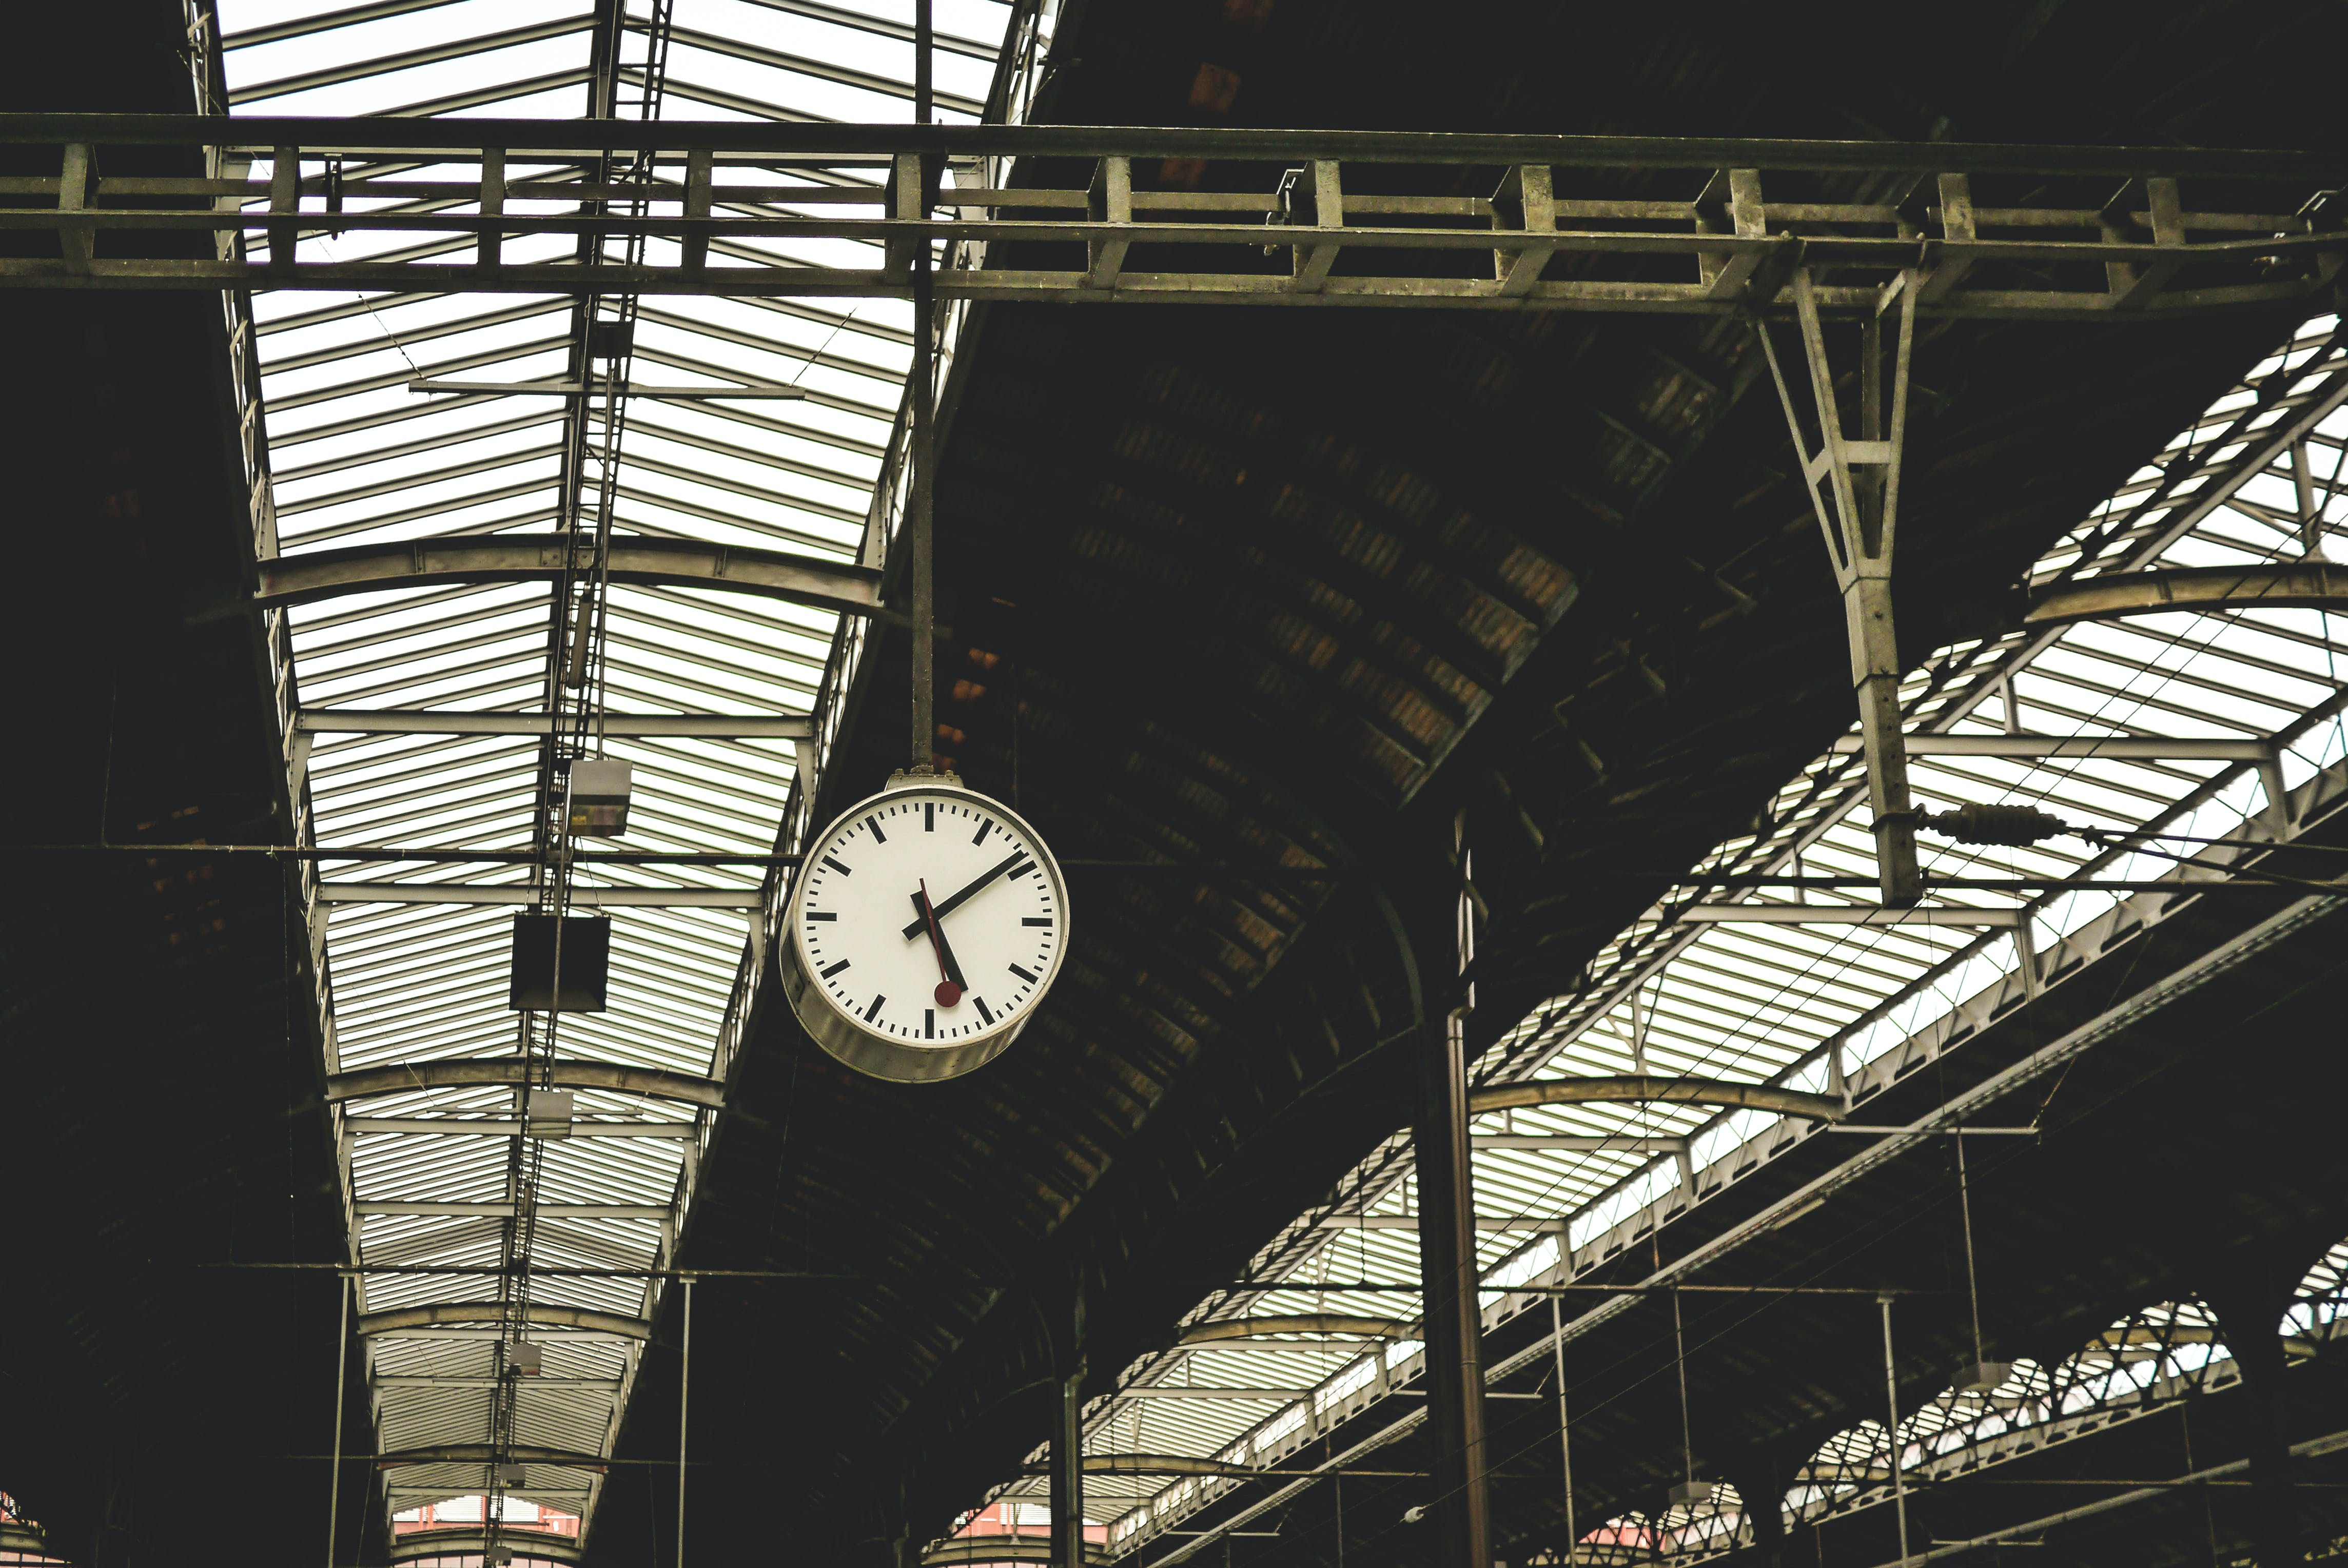 Low Angle View of Clock at Railroad Station